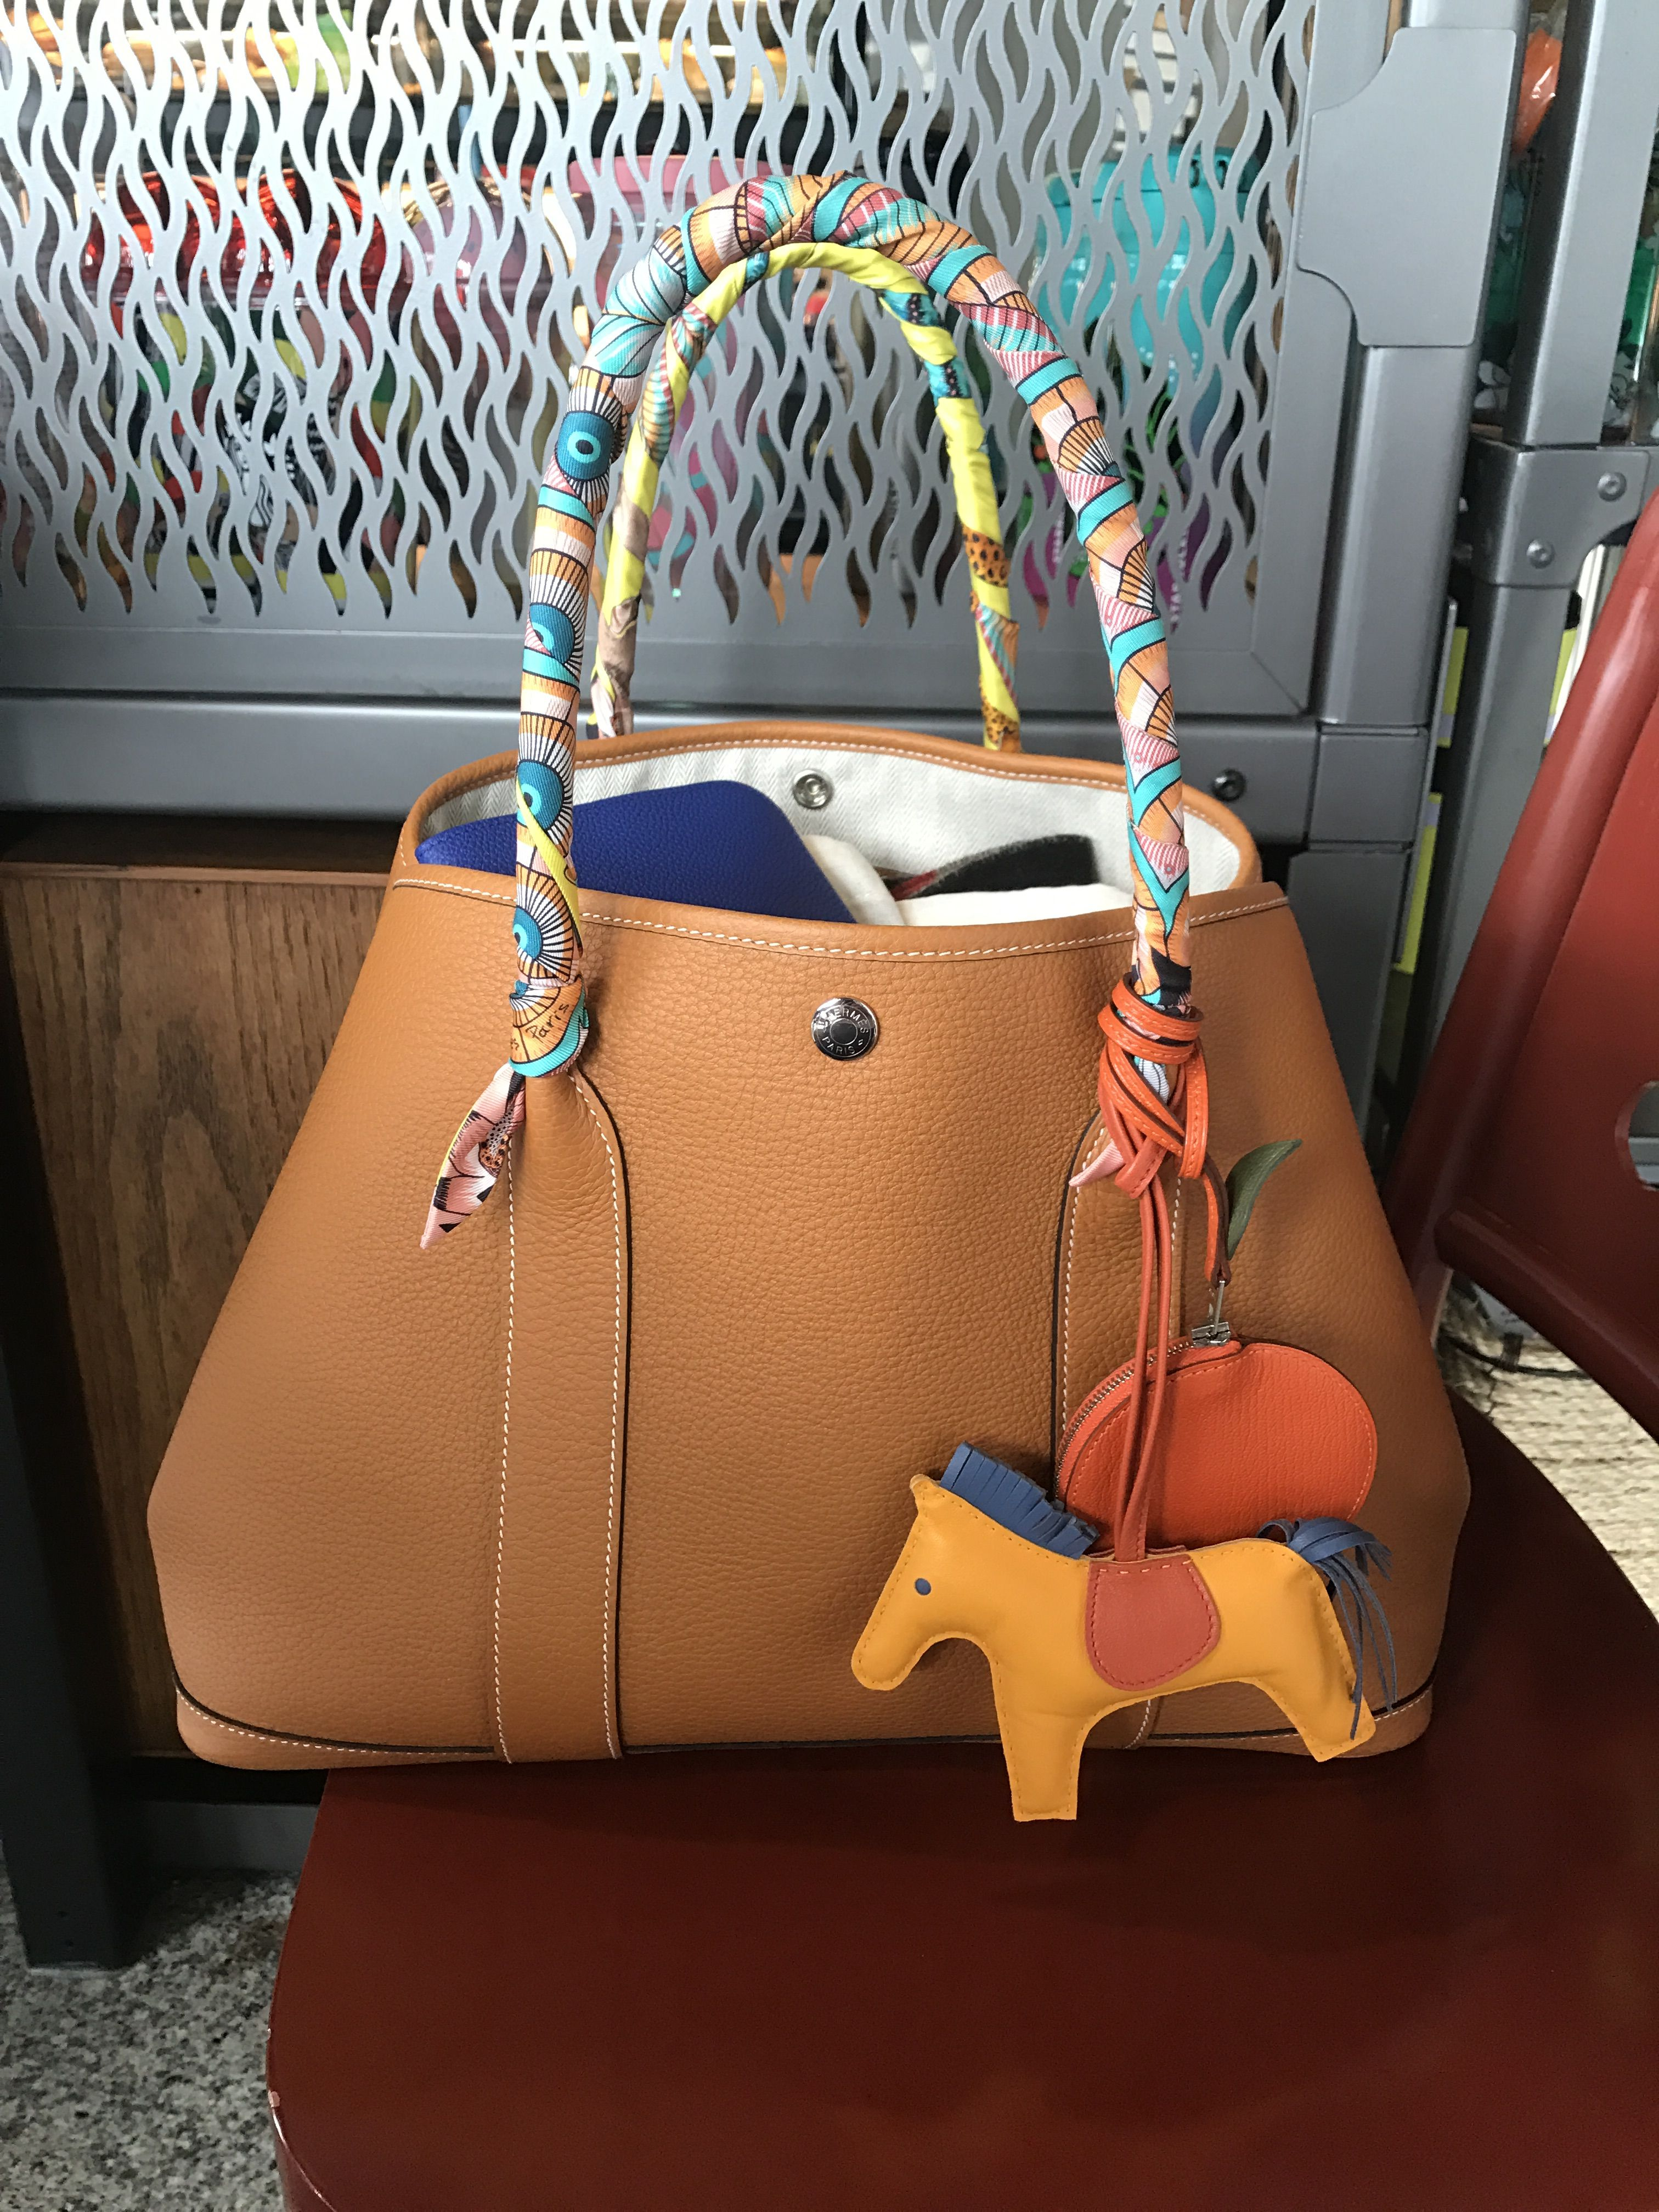 7c3385571a0b Hermes Garden party GM36 (clemence toffee) + Hermes Twilly + Hermes Rodeo  charm MM + Hermes Tutti-Frutti Orange charm (chevre)